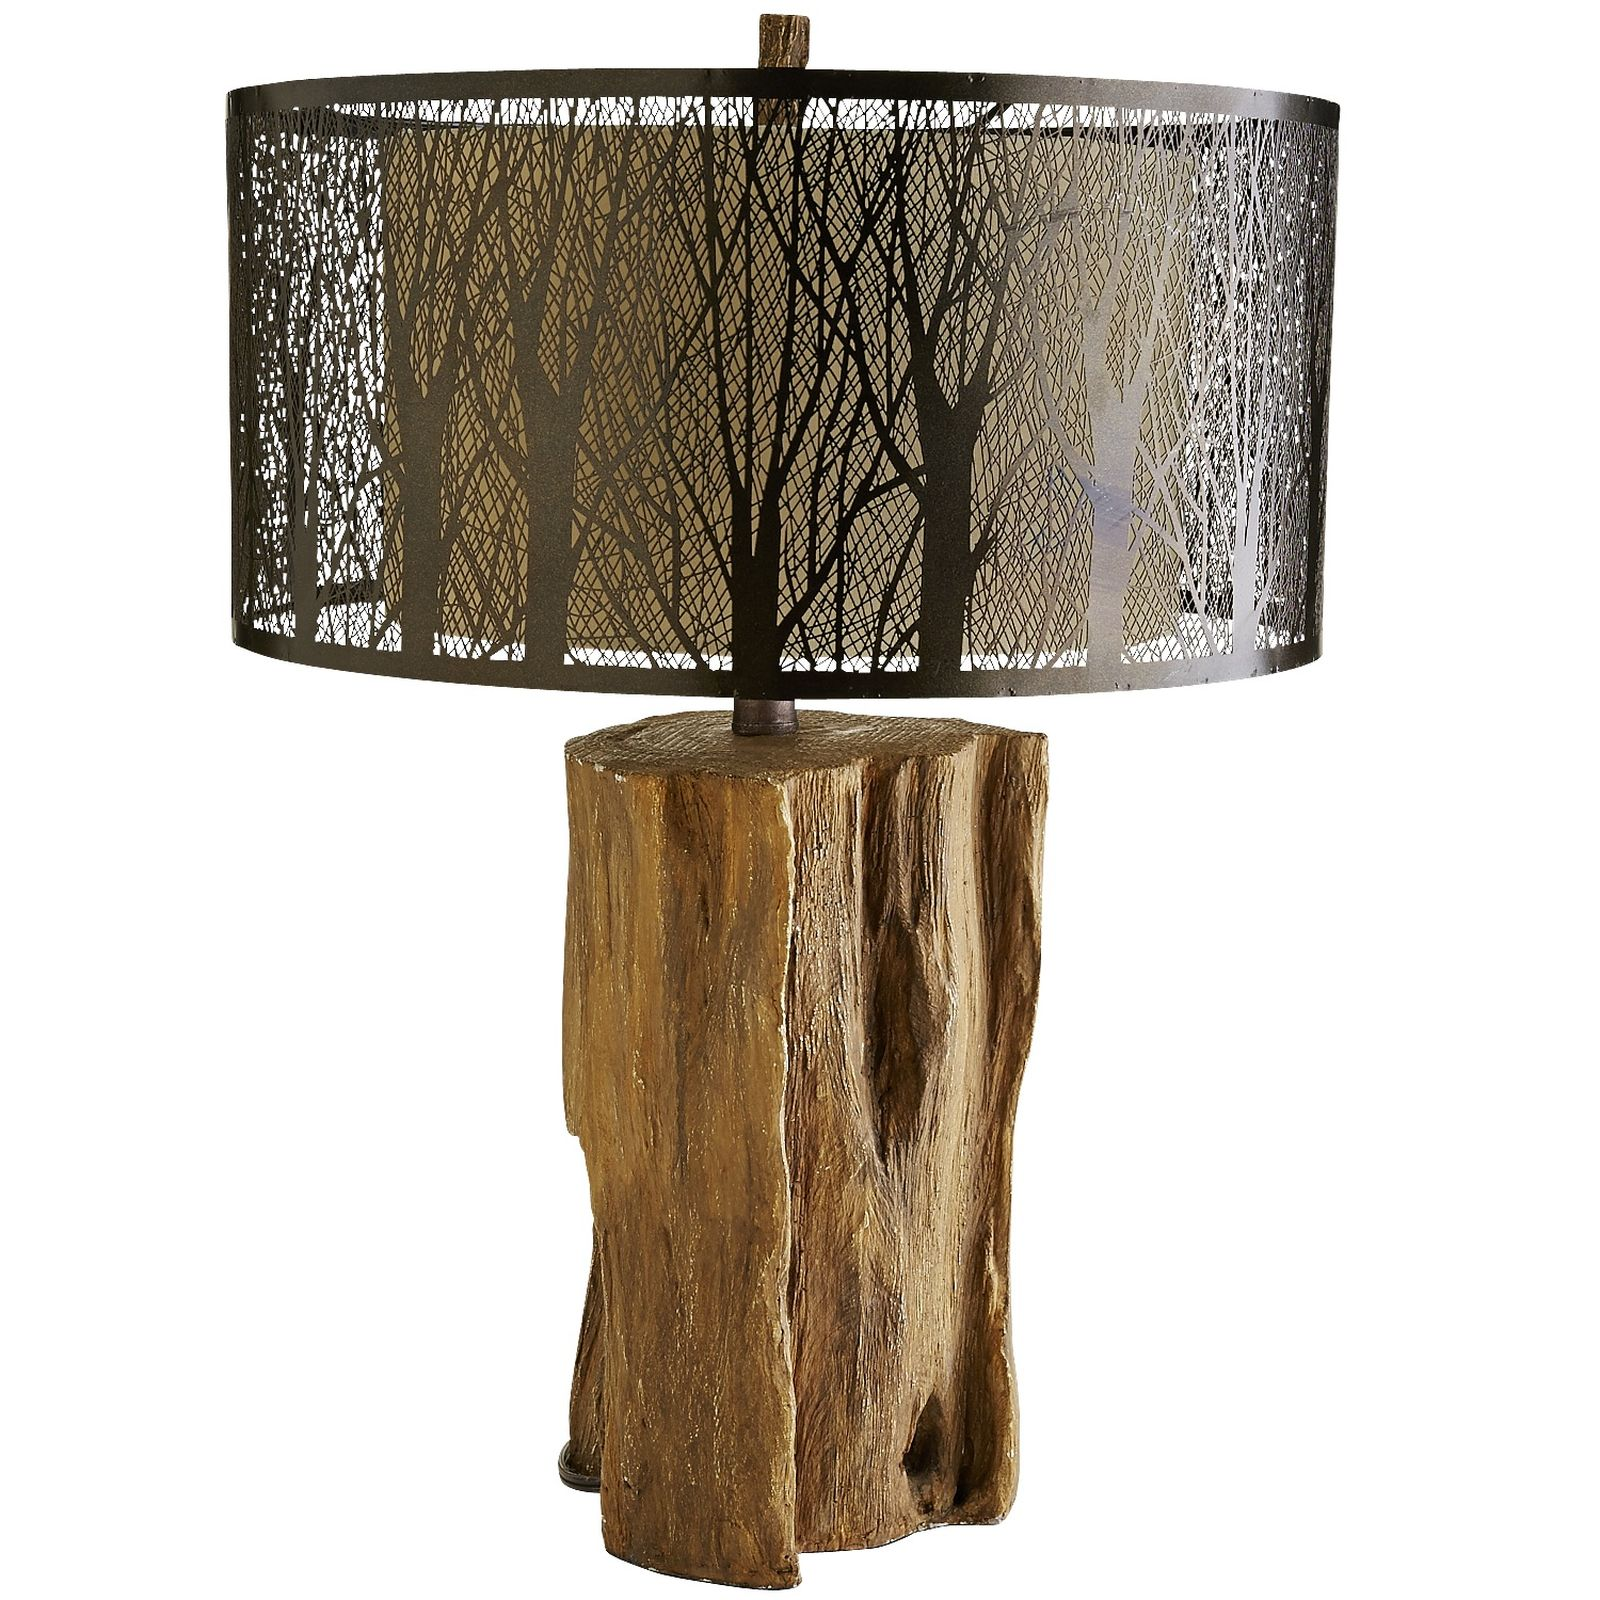 Birch lamp reasons to buy warisan lighting birch oil experiment lamp oil mozeypictures Gallery